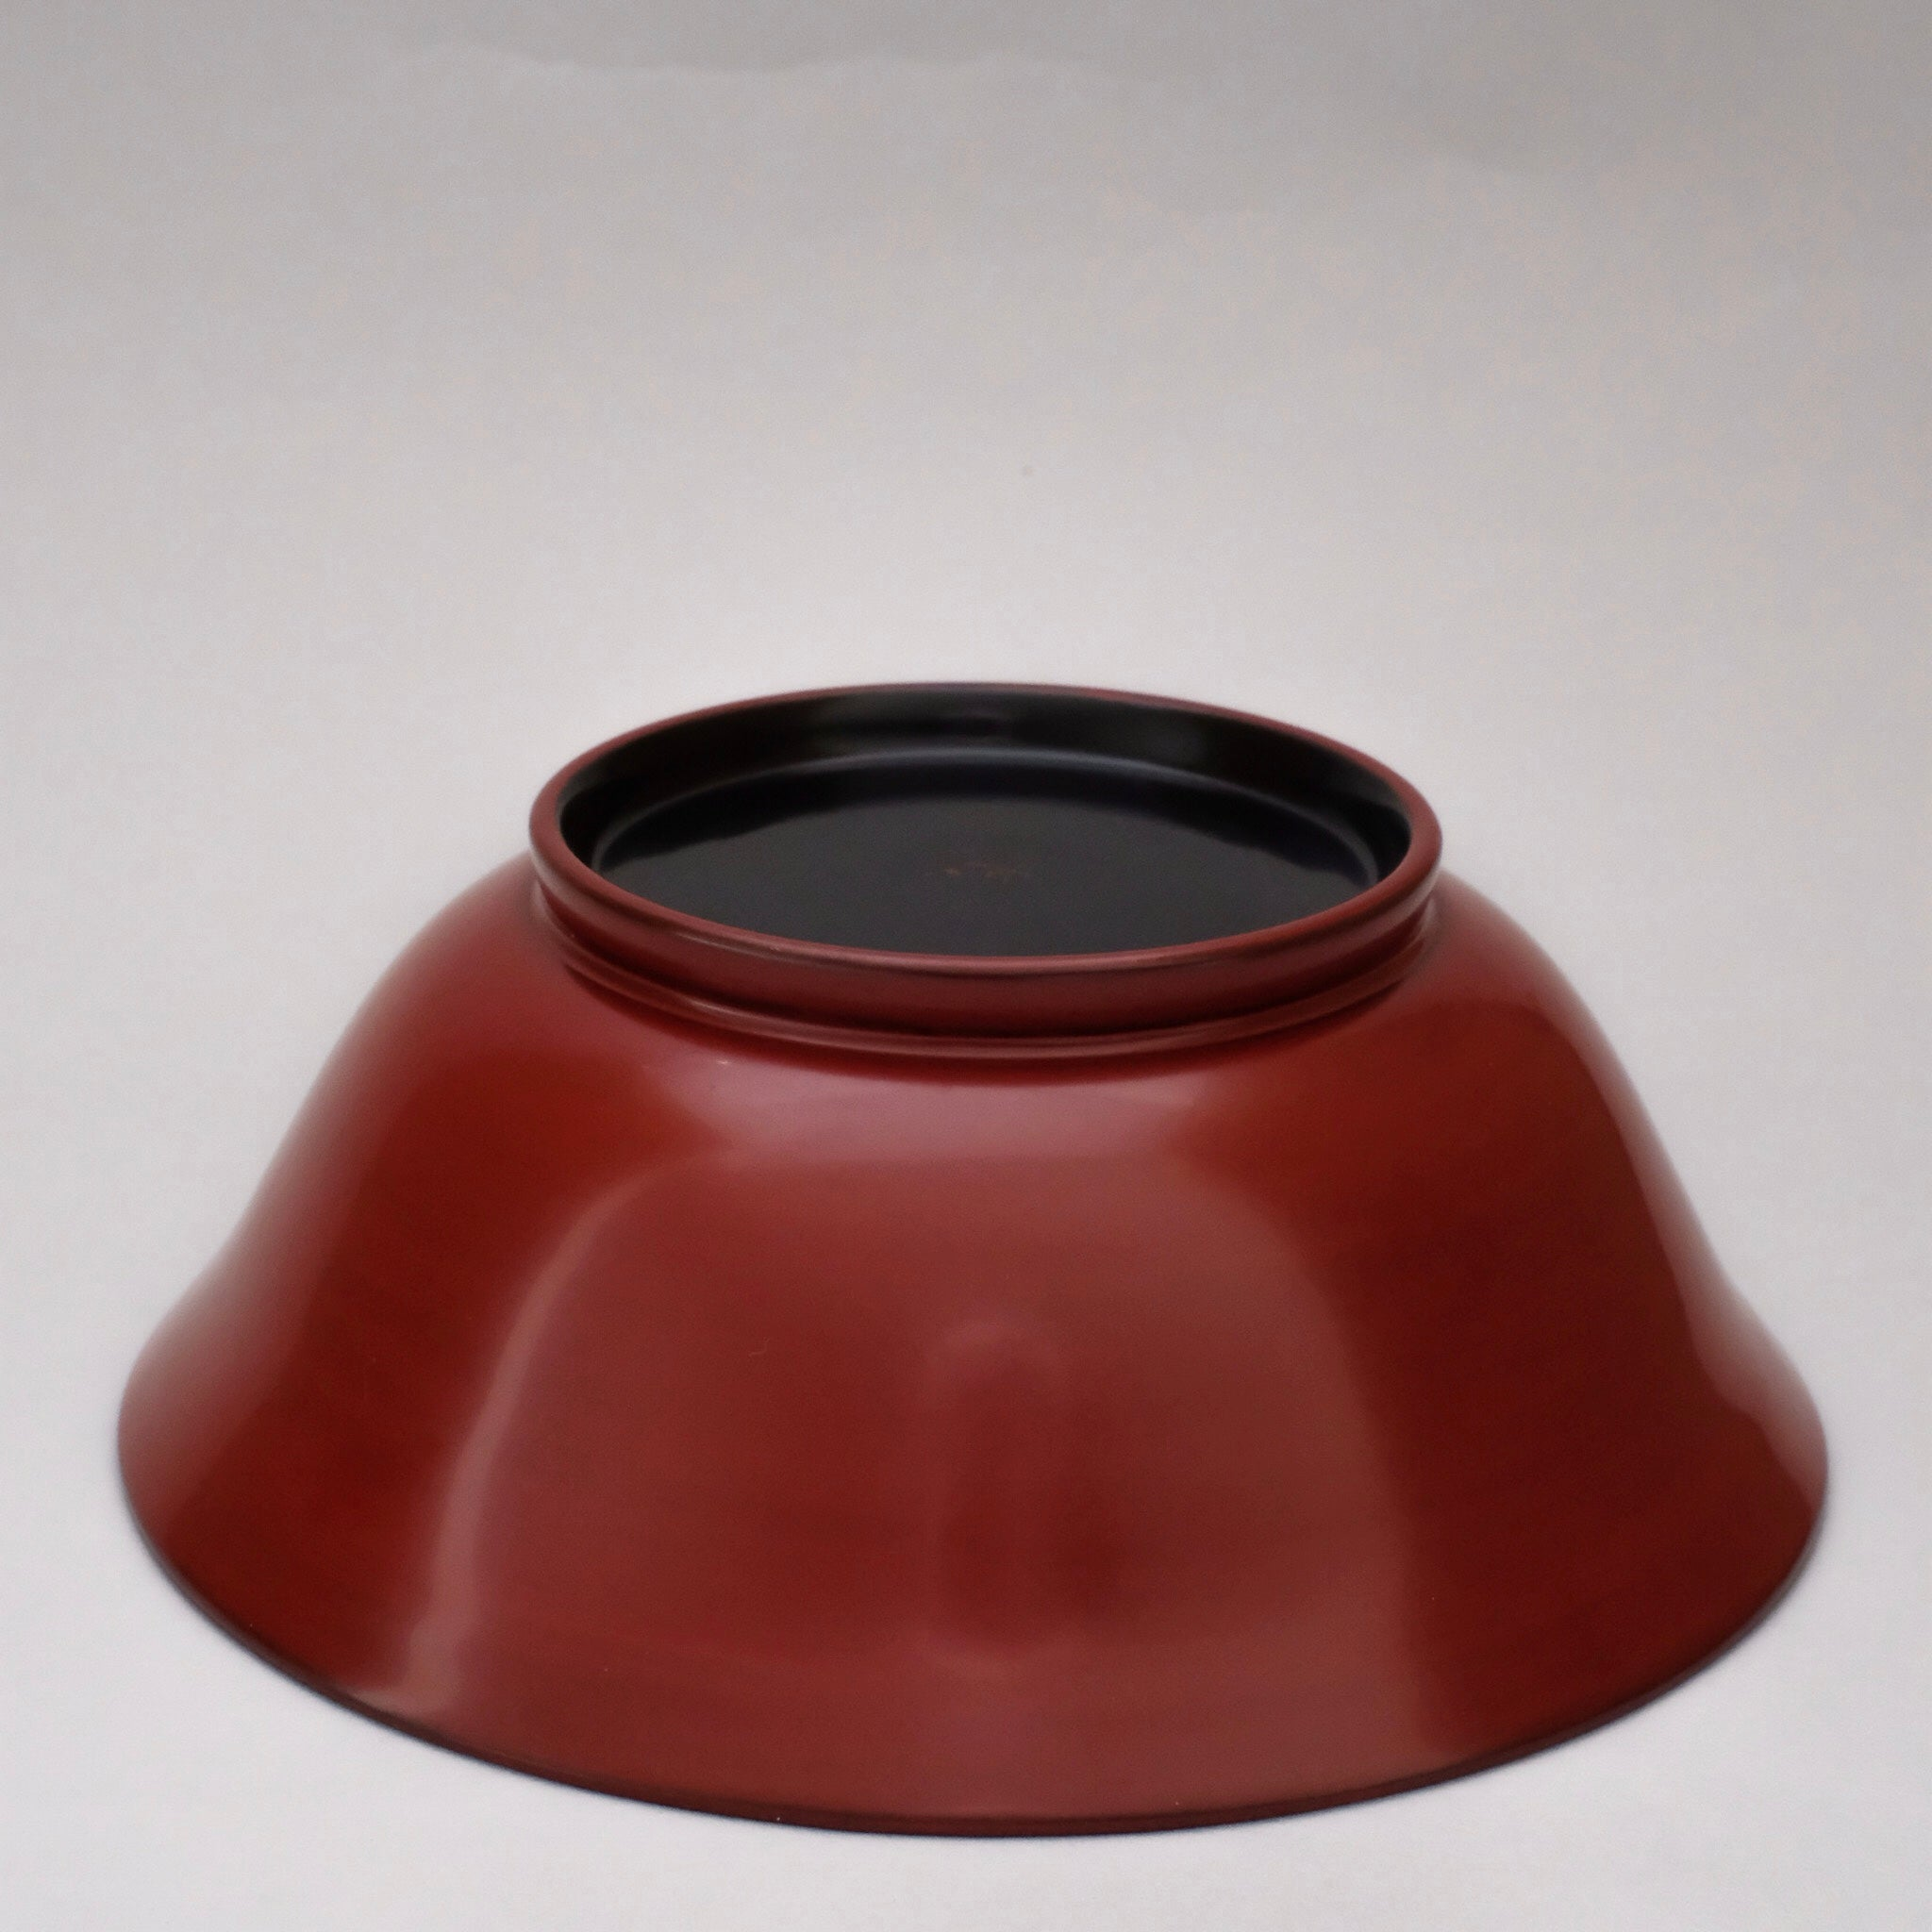 赤木明登  日々葉反椀 大 (赤)  Akito Akagi Nichinichihazori outward-curving bowl L ( red )